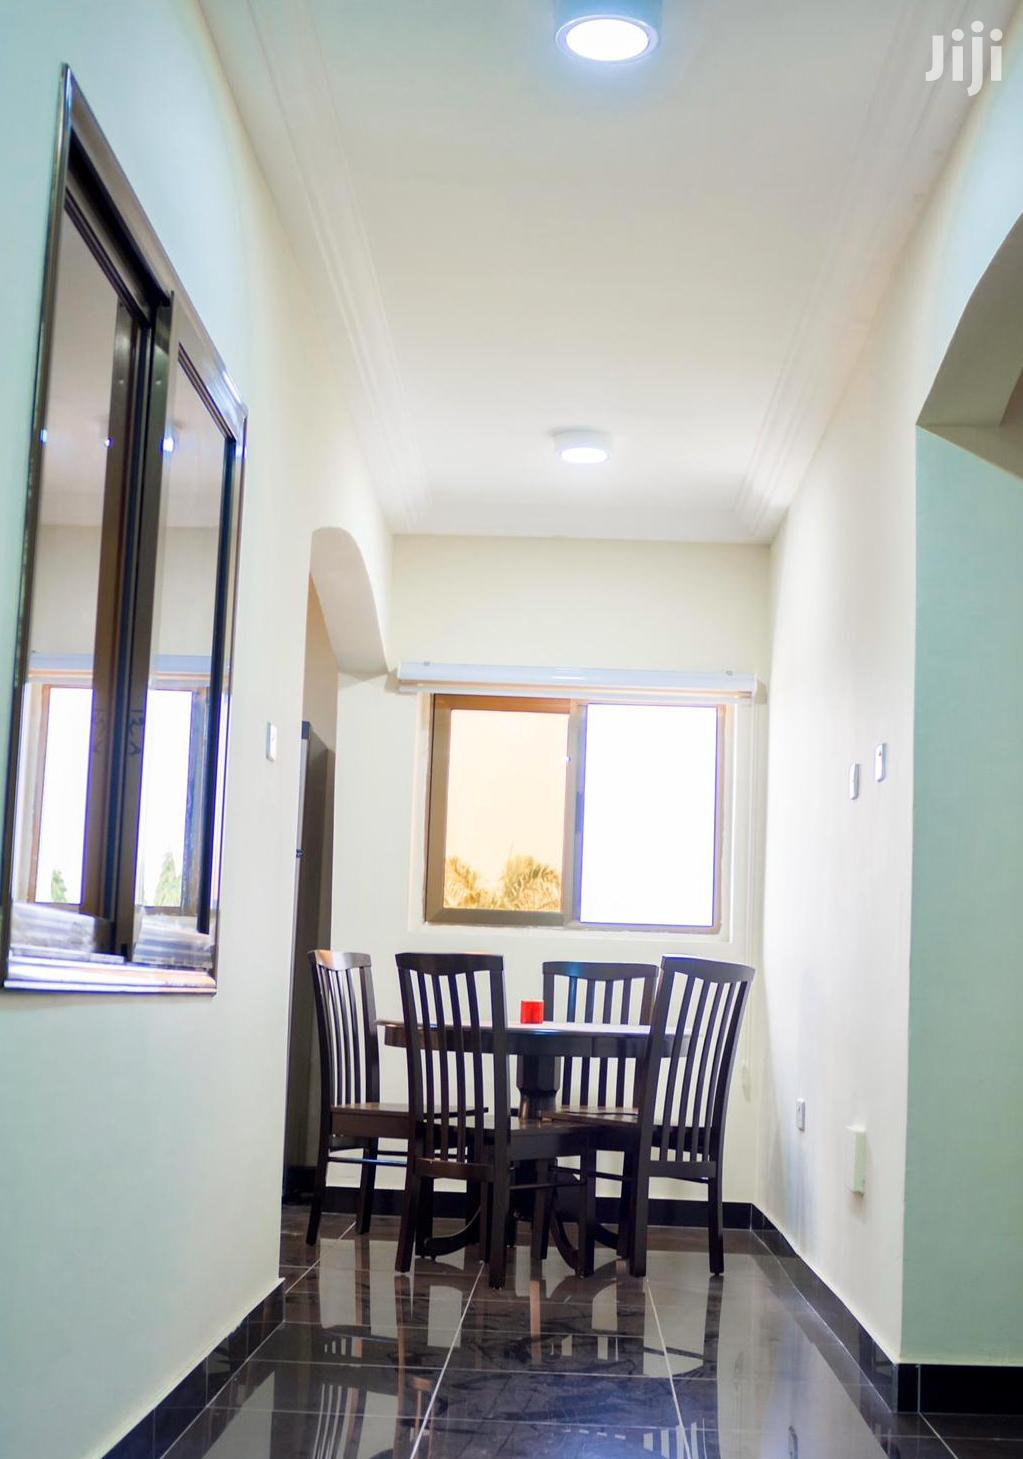 Newly Built 2bedroom Fully Furnished Apartment For Rent | Houses & Apartments For Rent for sale in East Legon, Greater Accra, Ghana